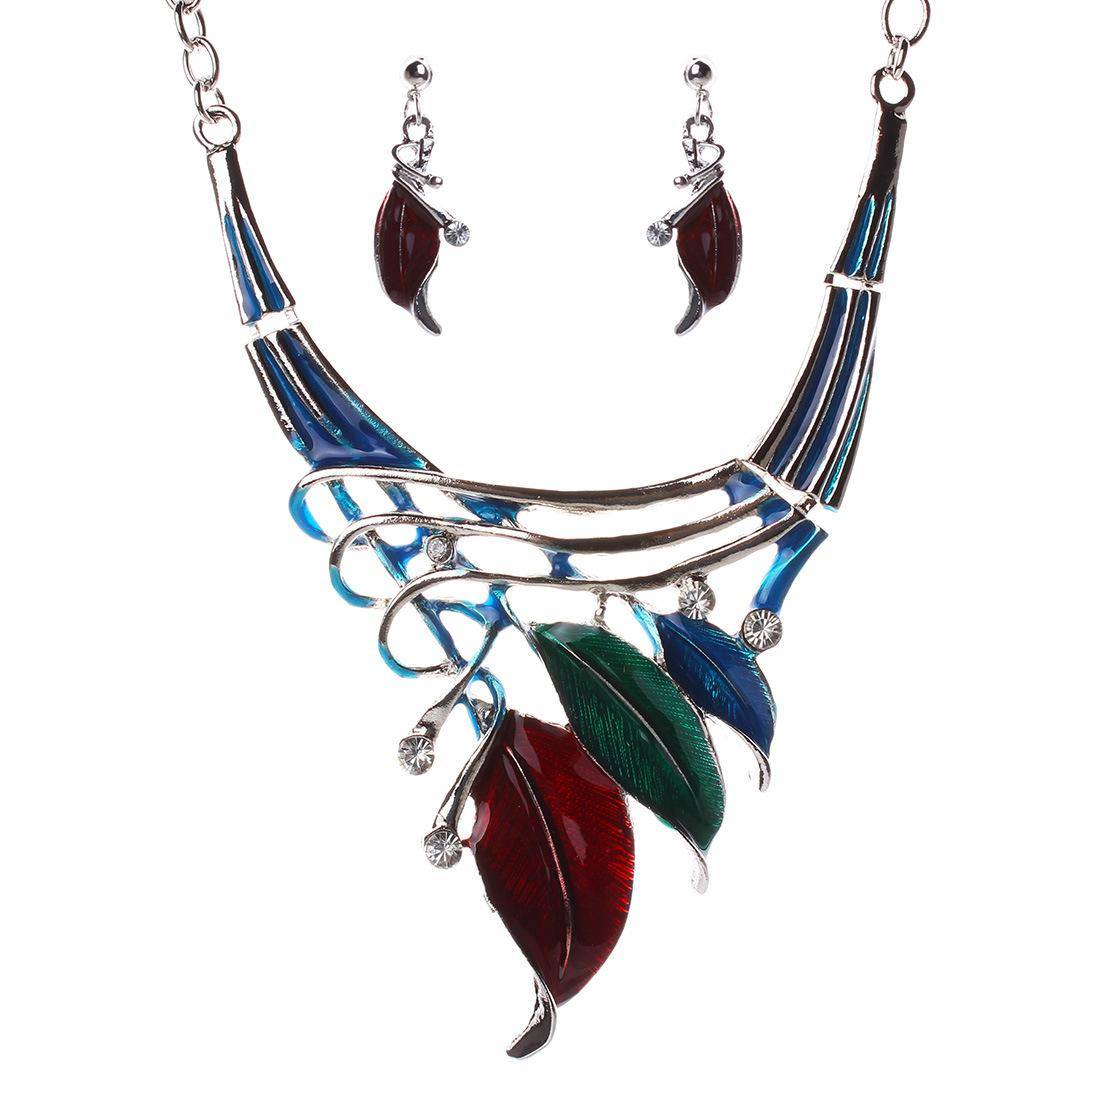 Leaf Style Alloy Enamel Necklace Earrings Set - 5 Colors Leaves Womens Statement Necklaces Jewelry Sets Boho Holiday